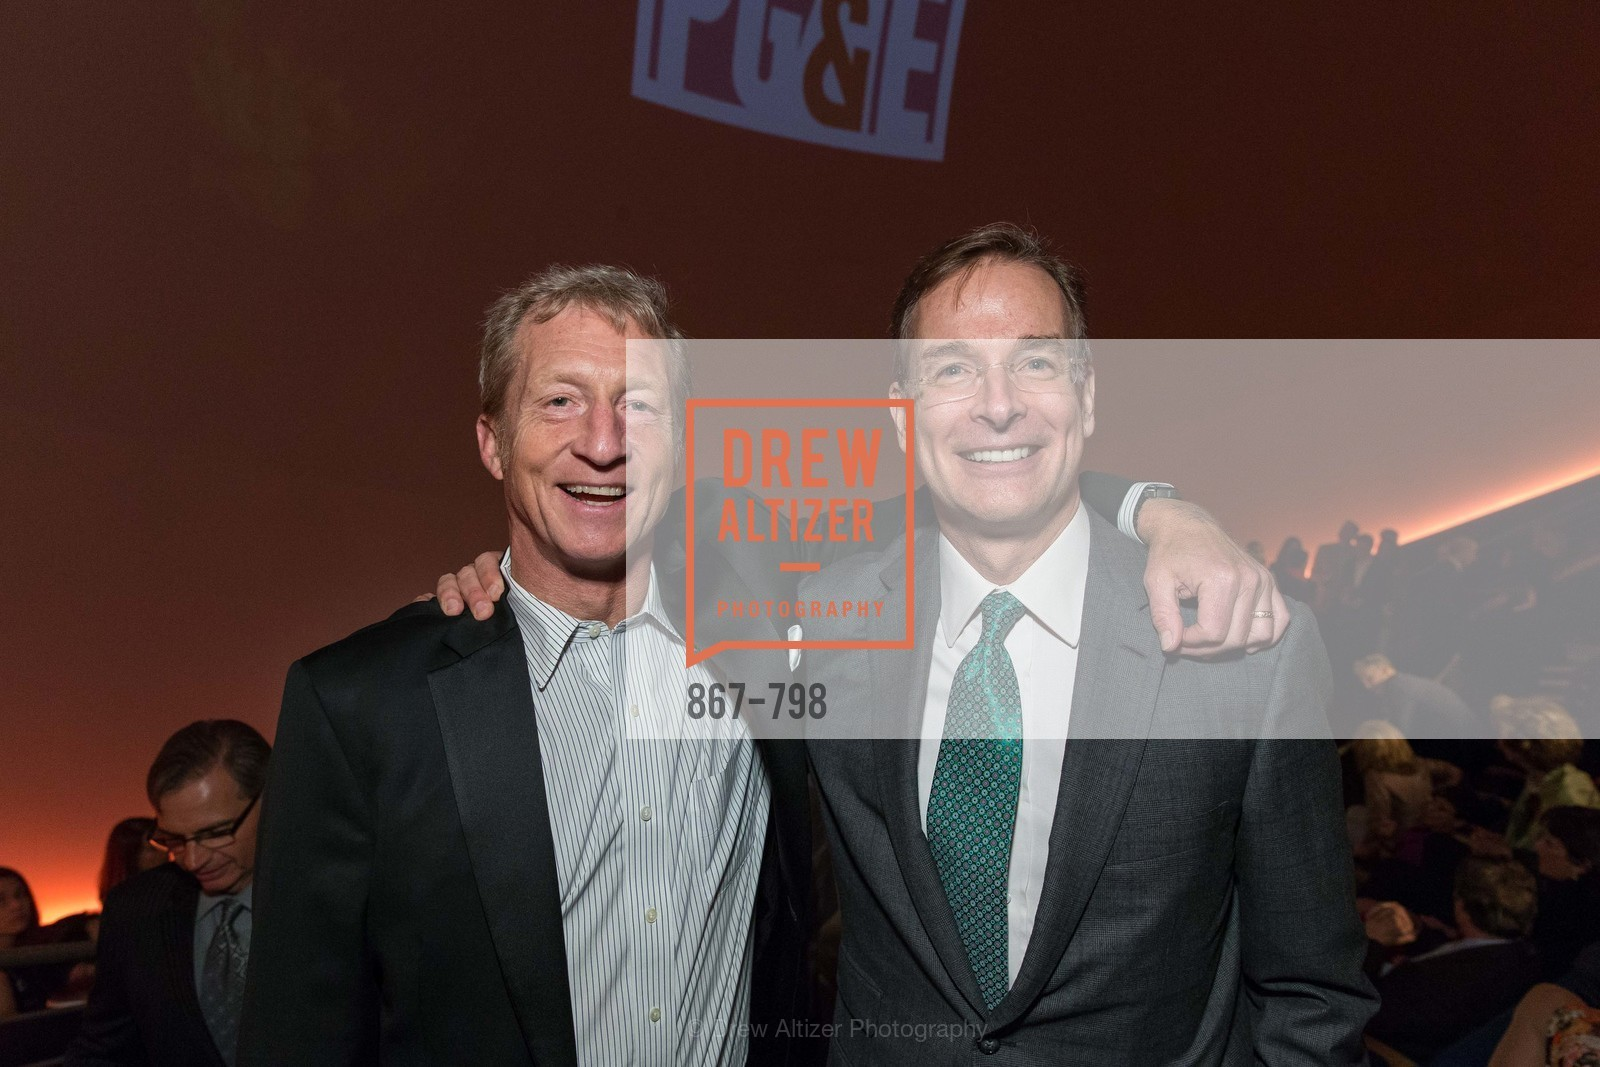 Tom Steyer, John Atwater, CALIFORNIA ACADEMY OF SCIENCES - Big Bang Gala 2015, US, April 24th, 2015,Drew Altizer, Drew Altizer Photography, full-service agency, private events, San Francisco photographer, photographer california